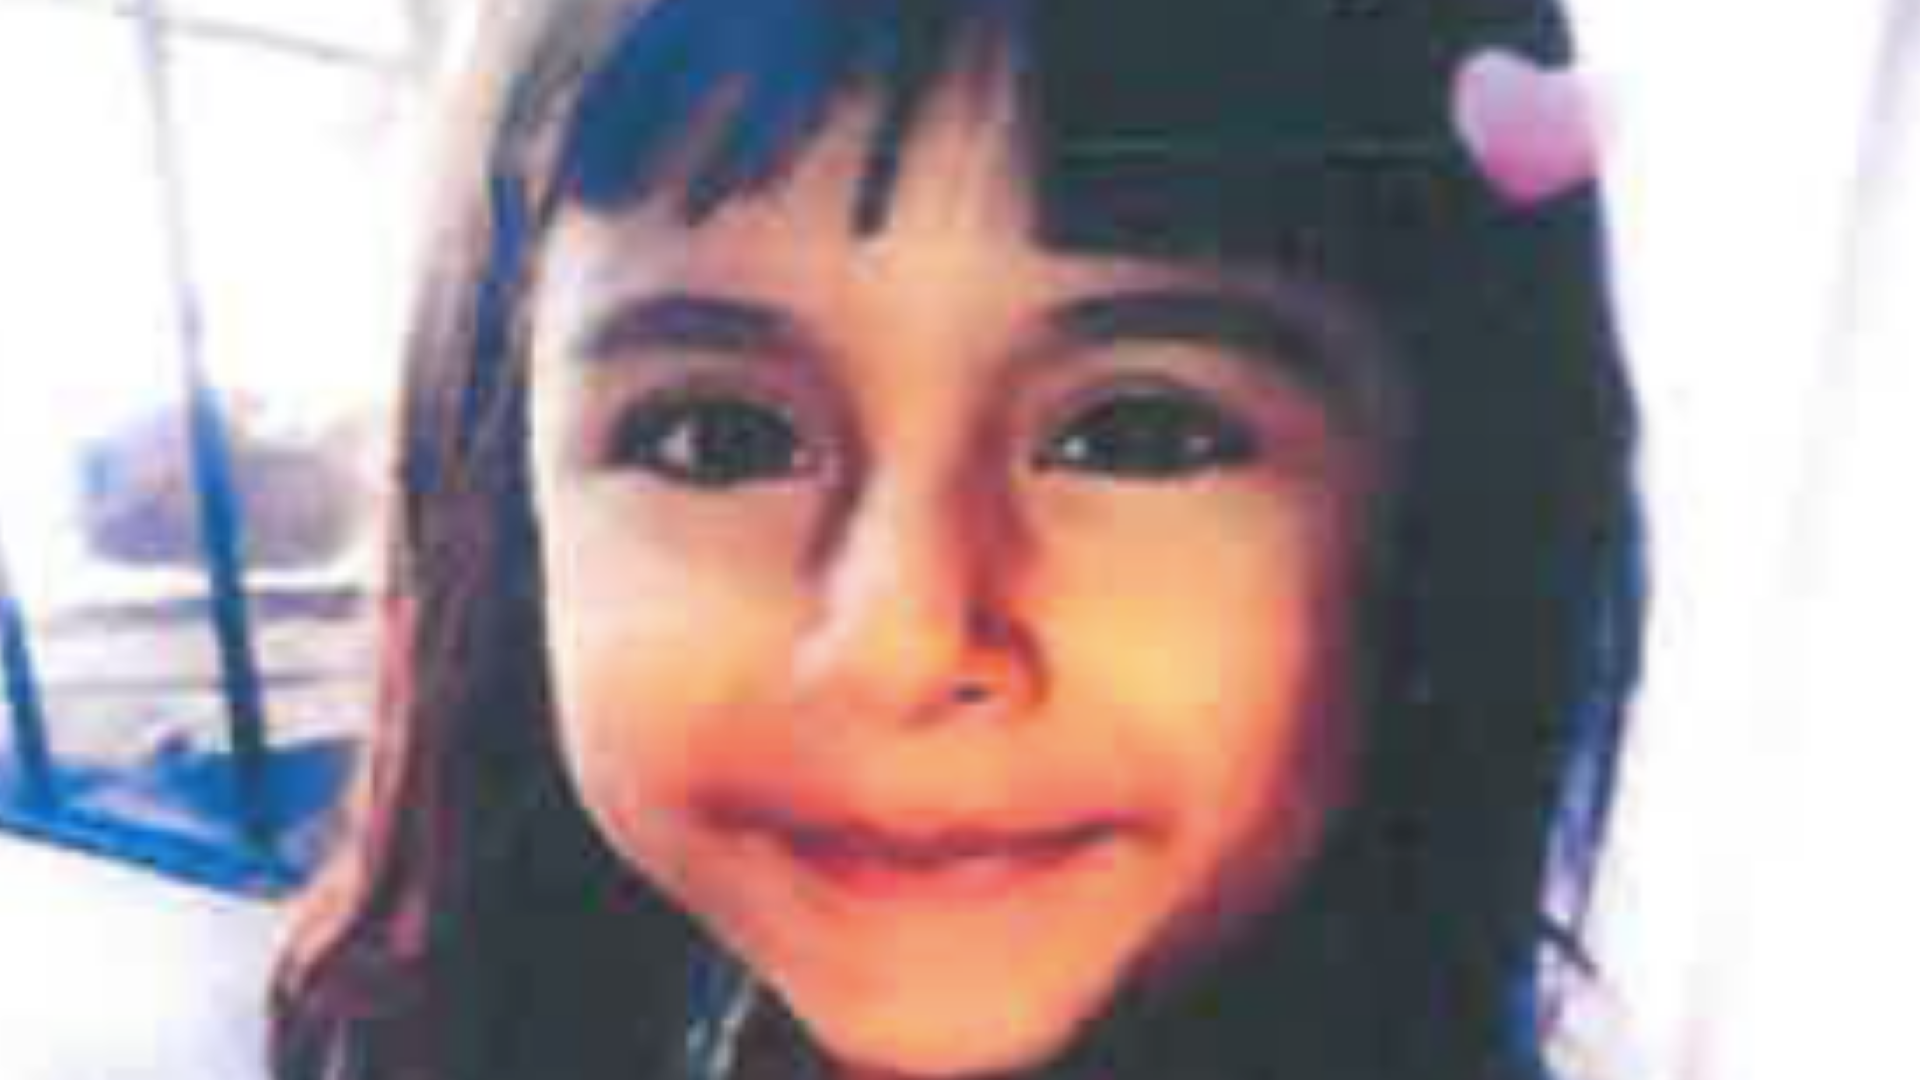 LAPD released this photo of Ruby Alvarado on Aug. 9, 2020.